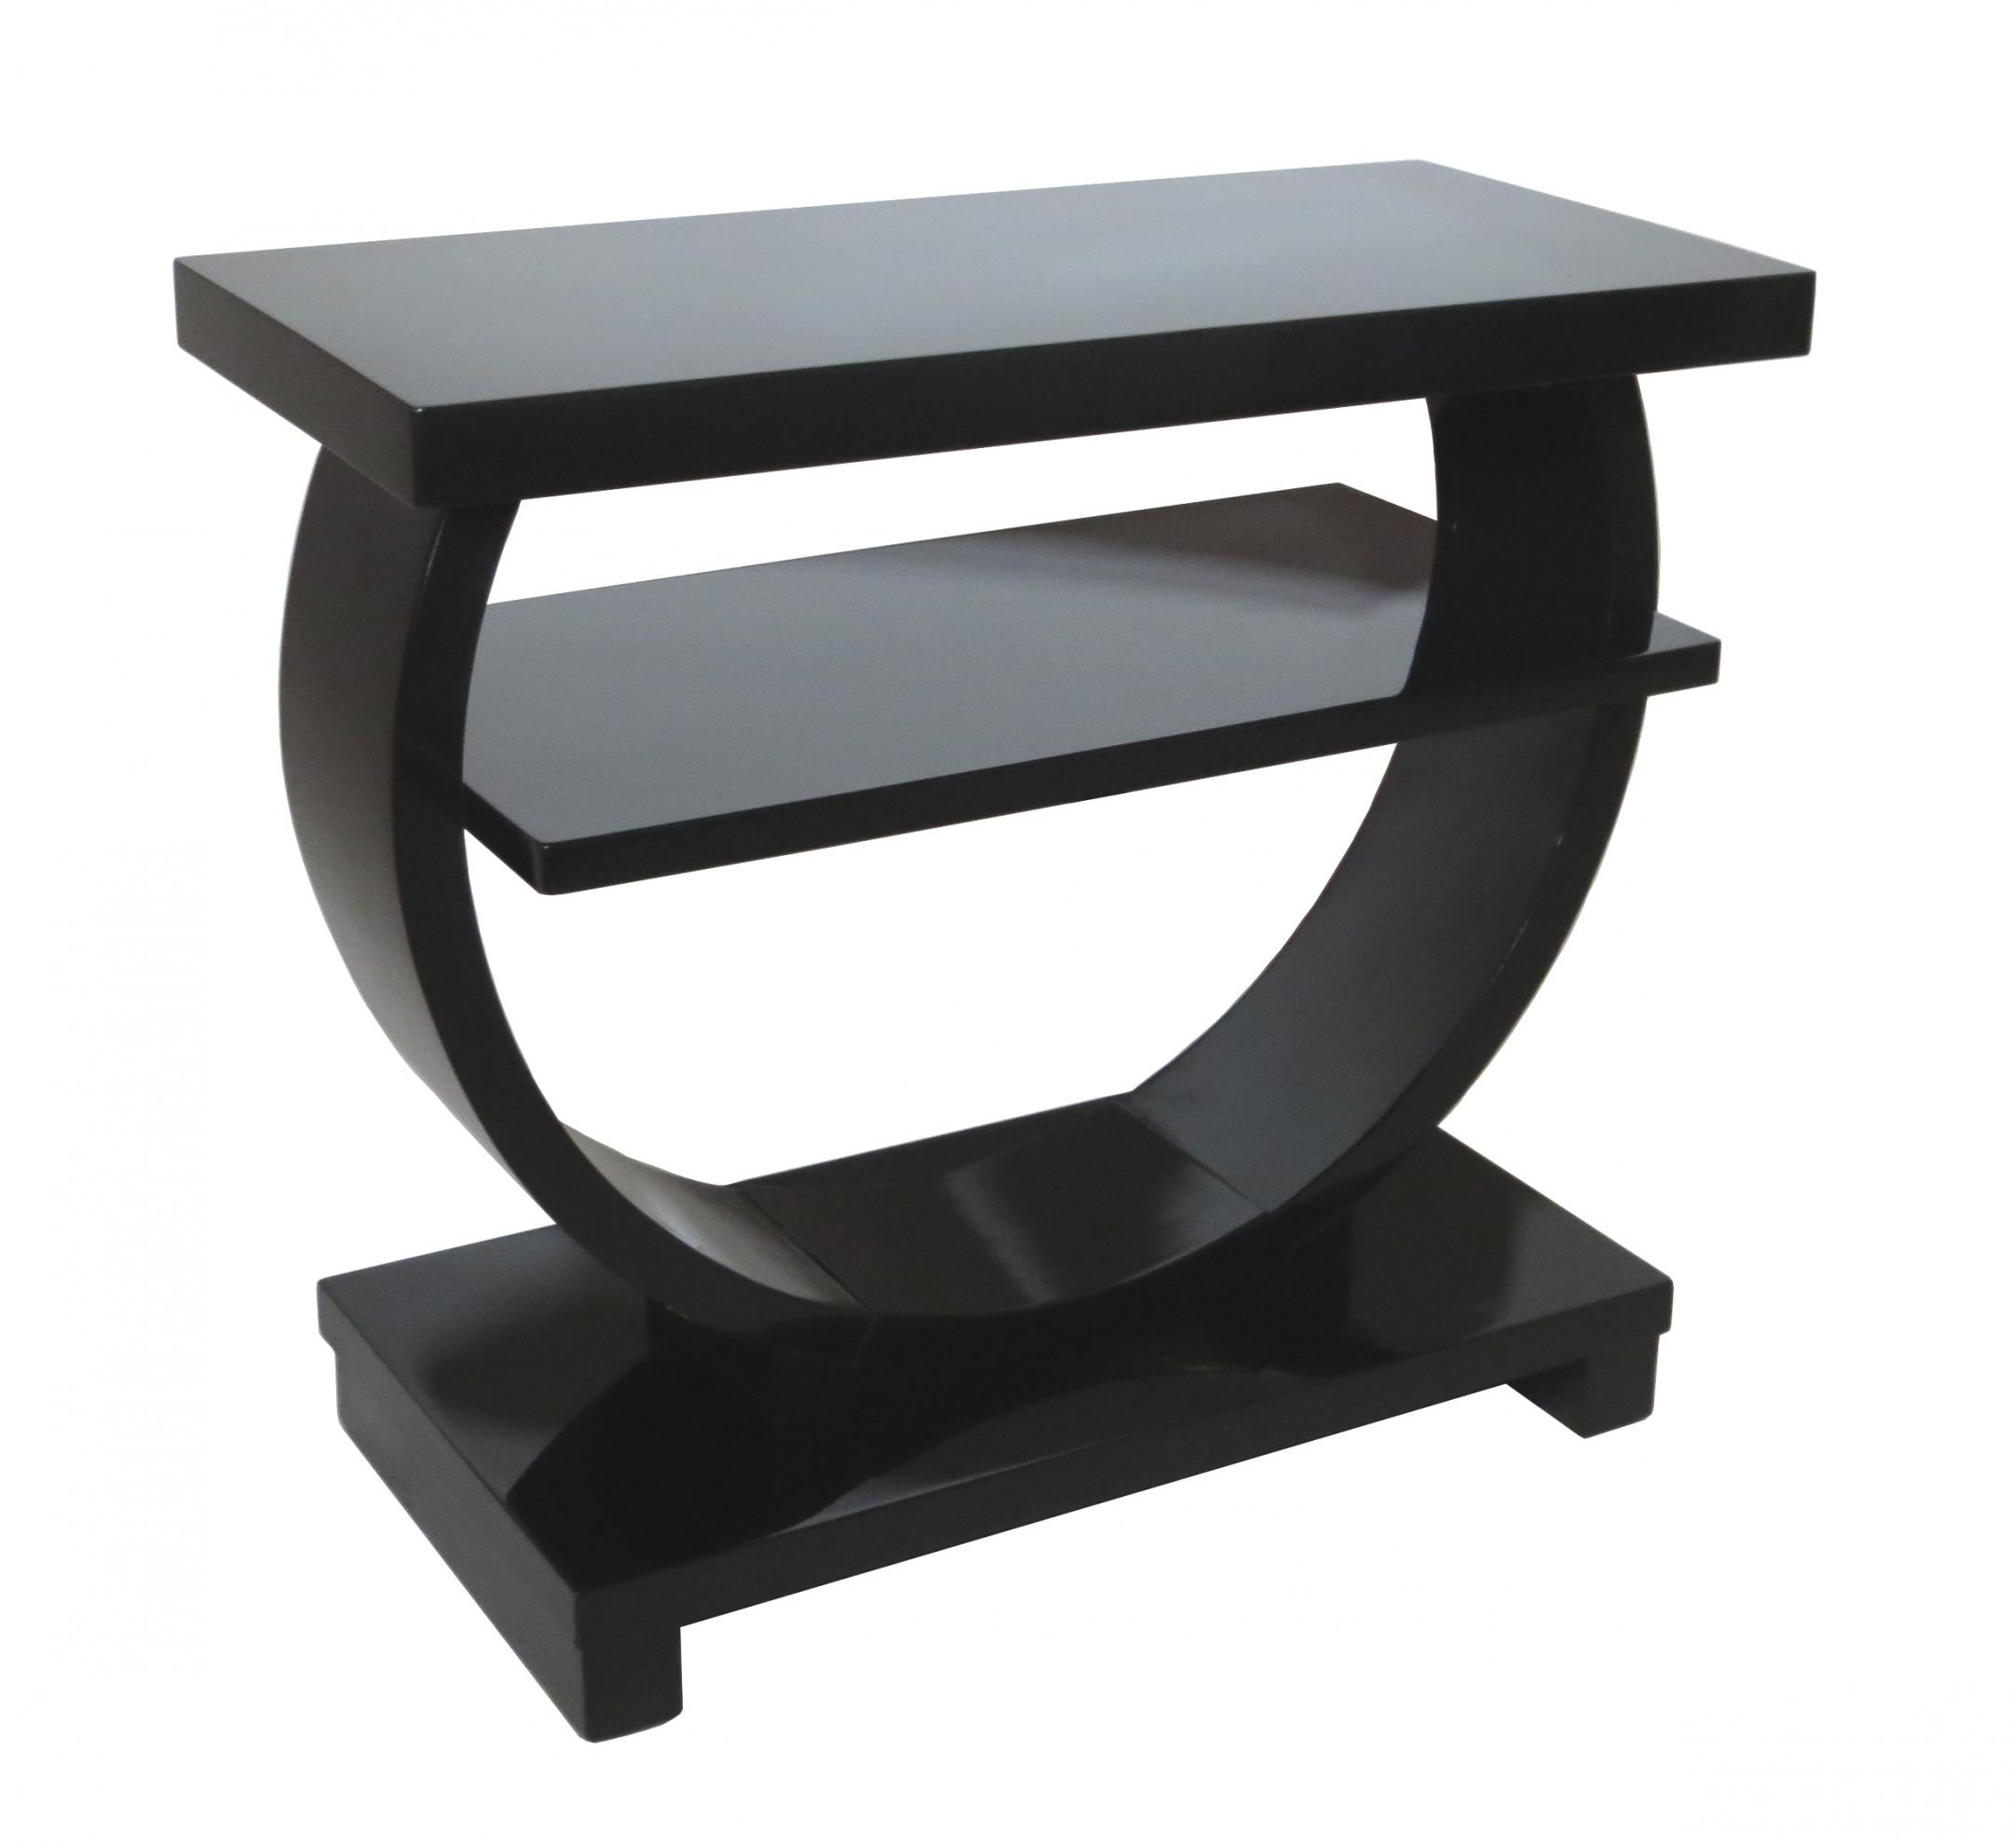 Modernage american art deco black lacquer side table Modern side table